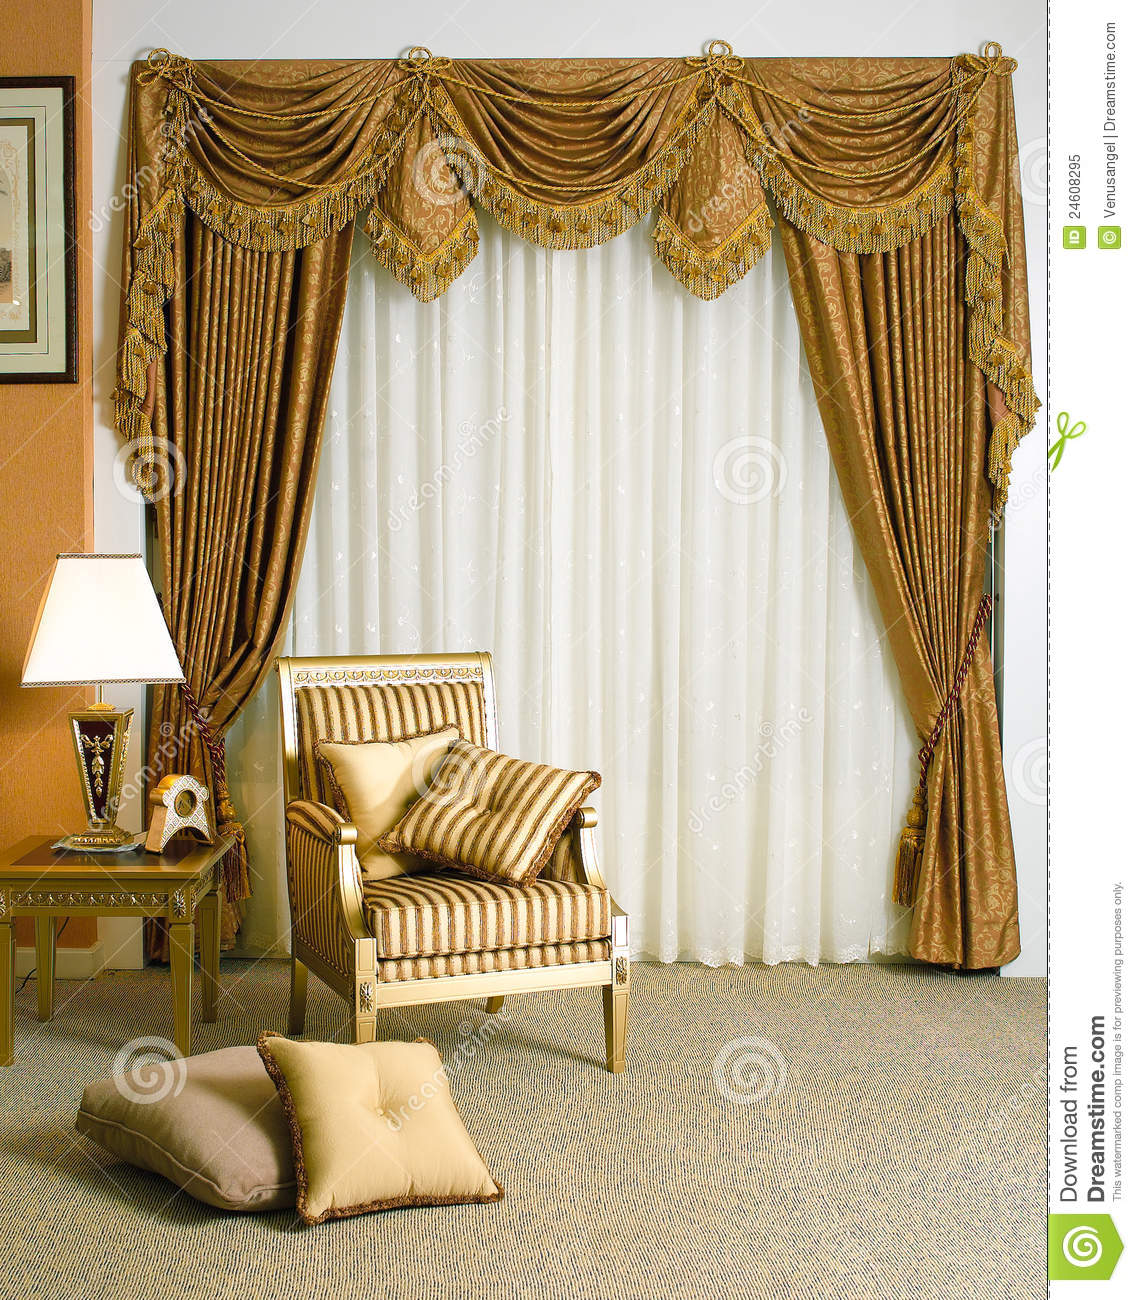 Beautiful Curtain Beautiful Curtain In Living Room Stock Image Image 24608295